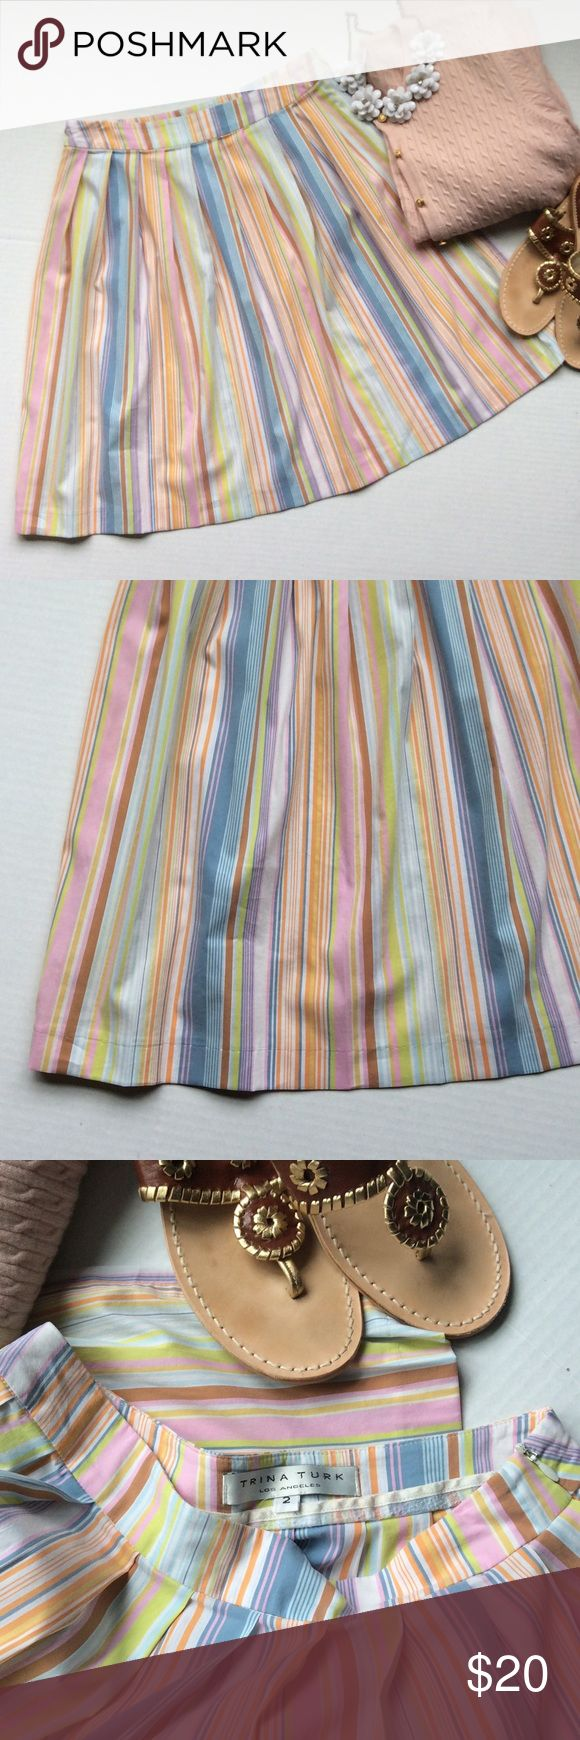 This is your go to closet addition!!! Classic cotton skirt by designer Trina Turk!  So many colors to match it up with! Trina Turk Skirts